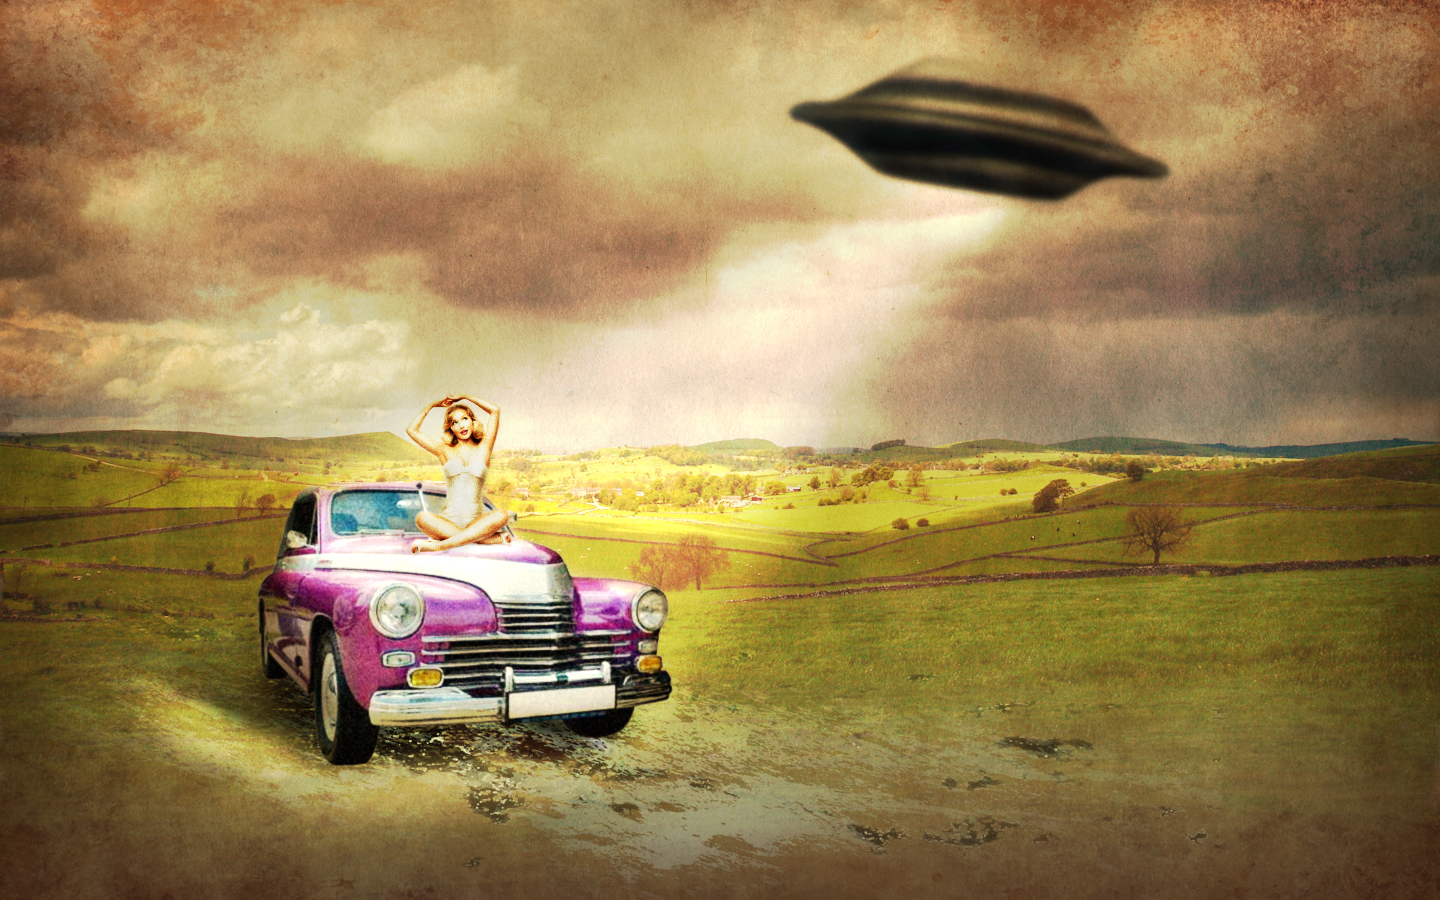 UFO artwork HD Wallpaper